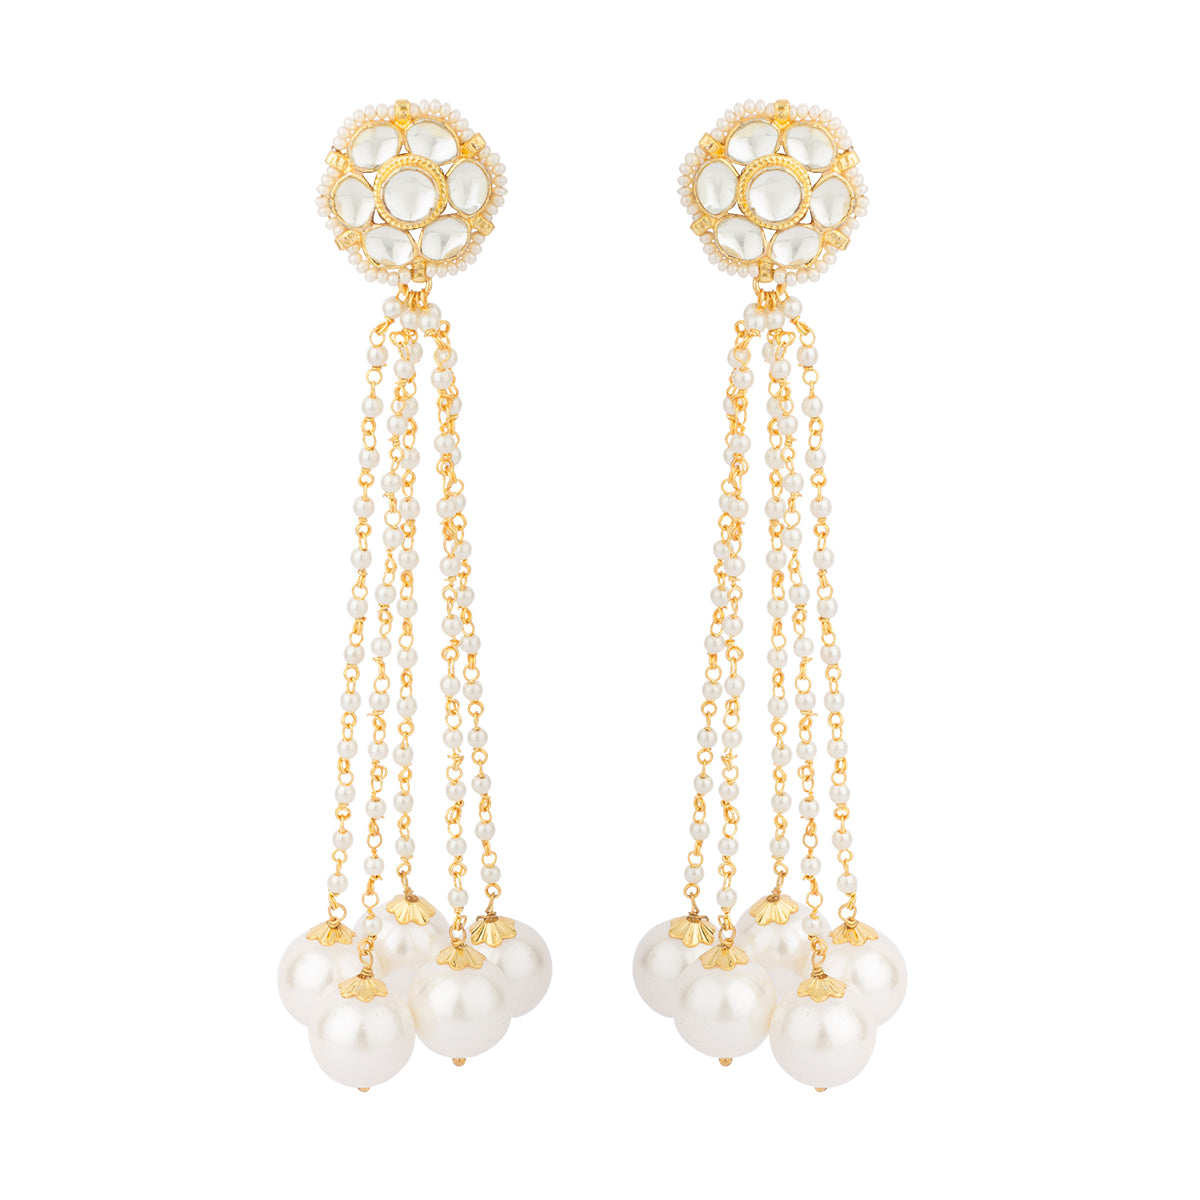 With pearl strings hanging and shining pearls embellished in it, this earring looks like a flower when you wear it.